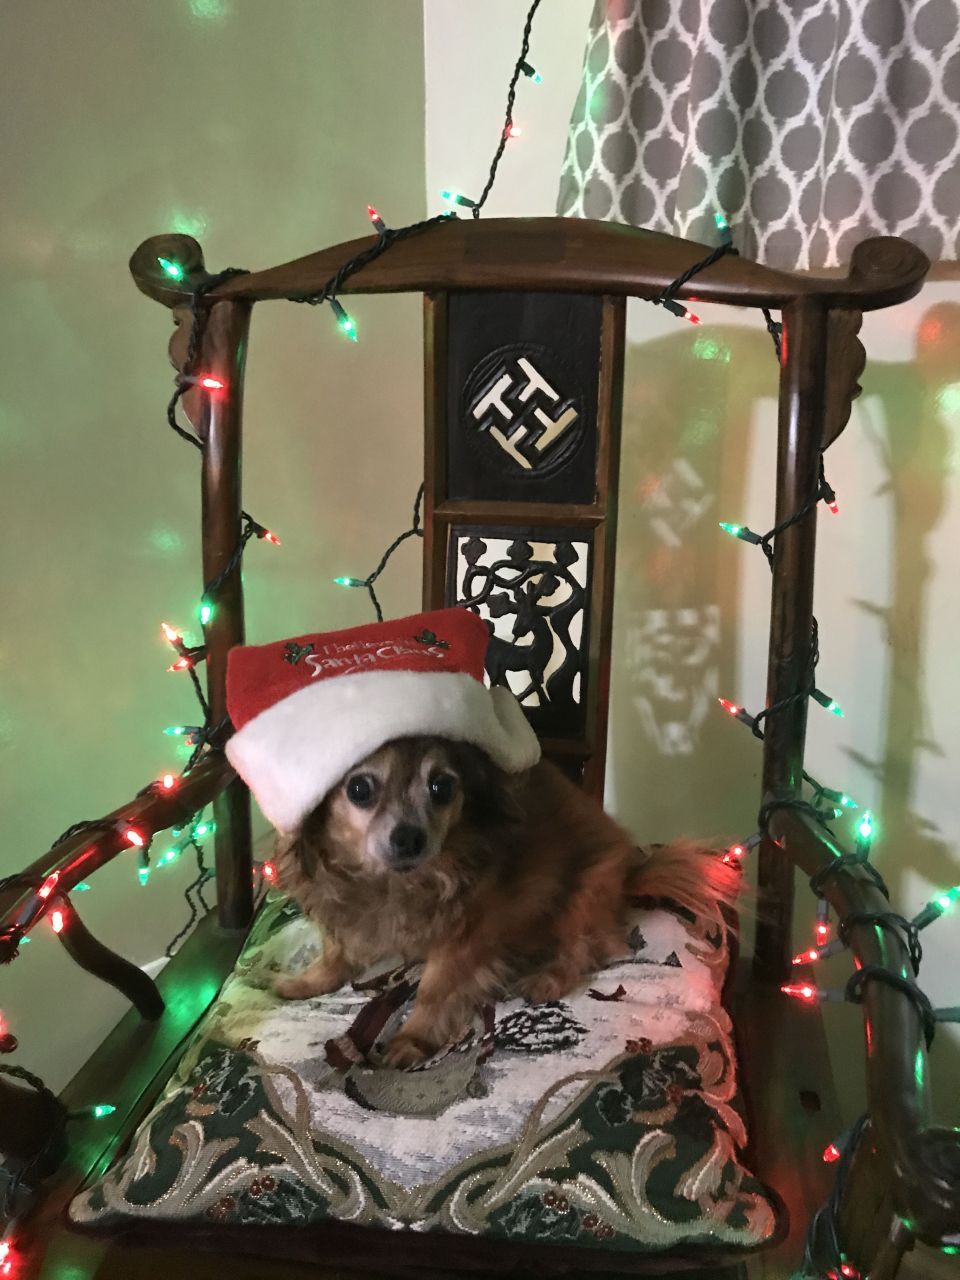 Only 88 days to Christmas. Furbi is ready and is sitting in the Chair of Cheer.